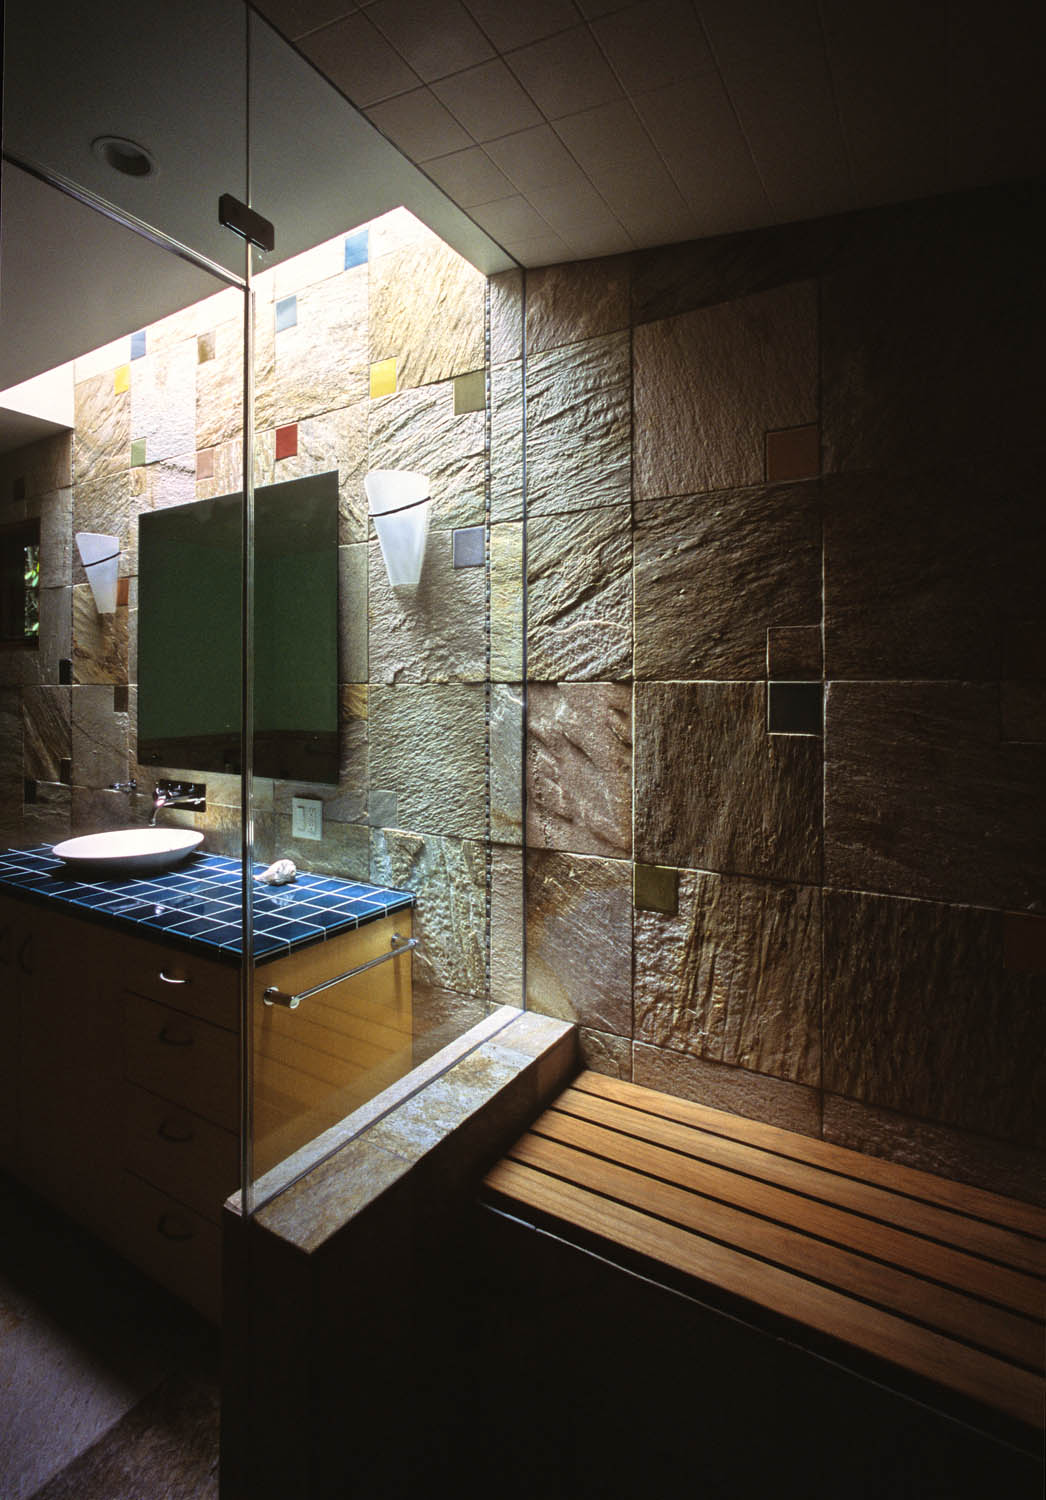 The master bathroom has a long skylight that washes light over a long wall of stone, changing in mood and intensity over the course of the day.